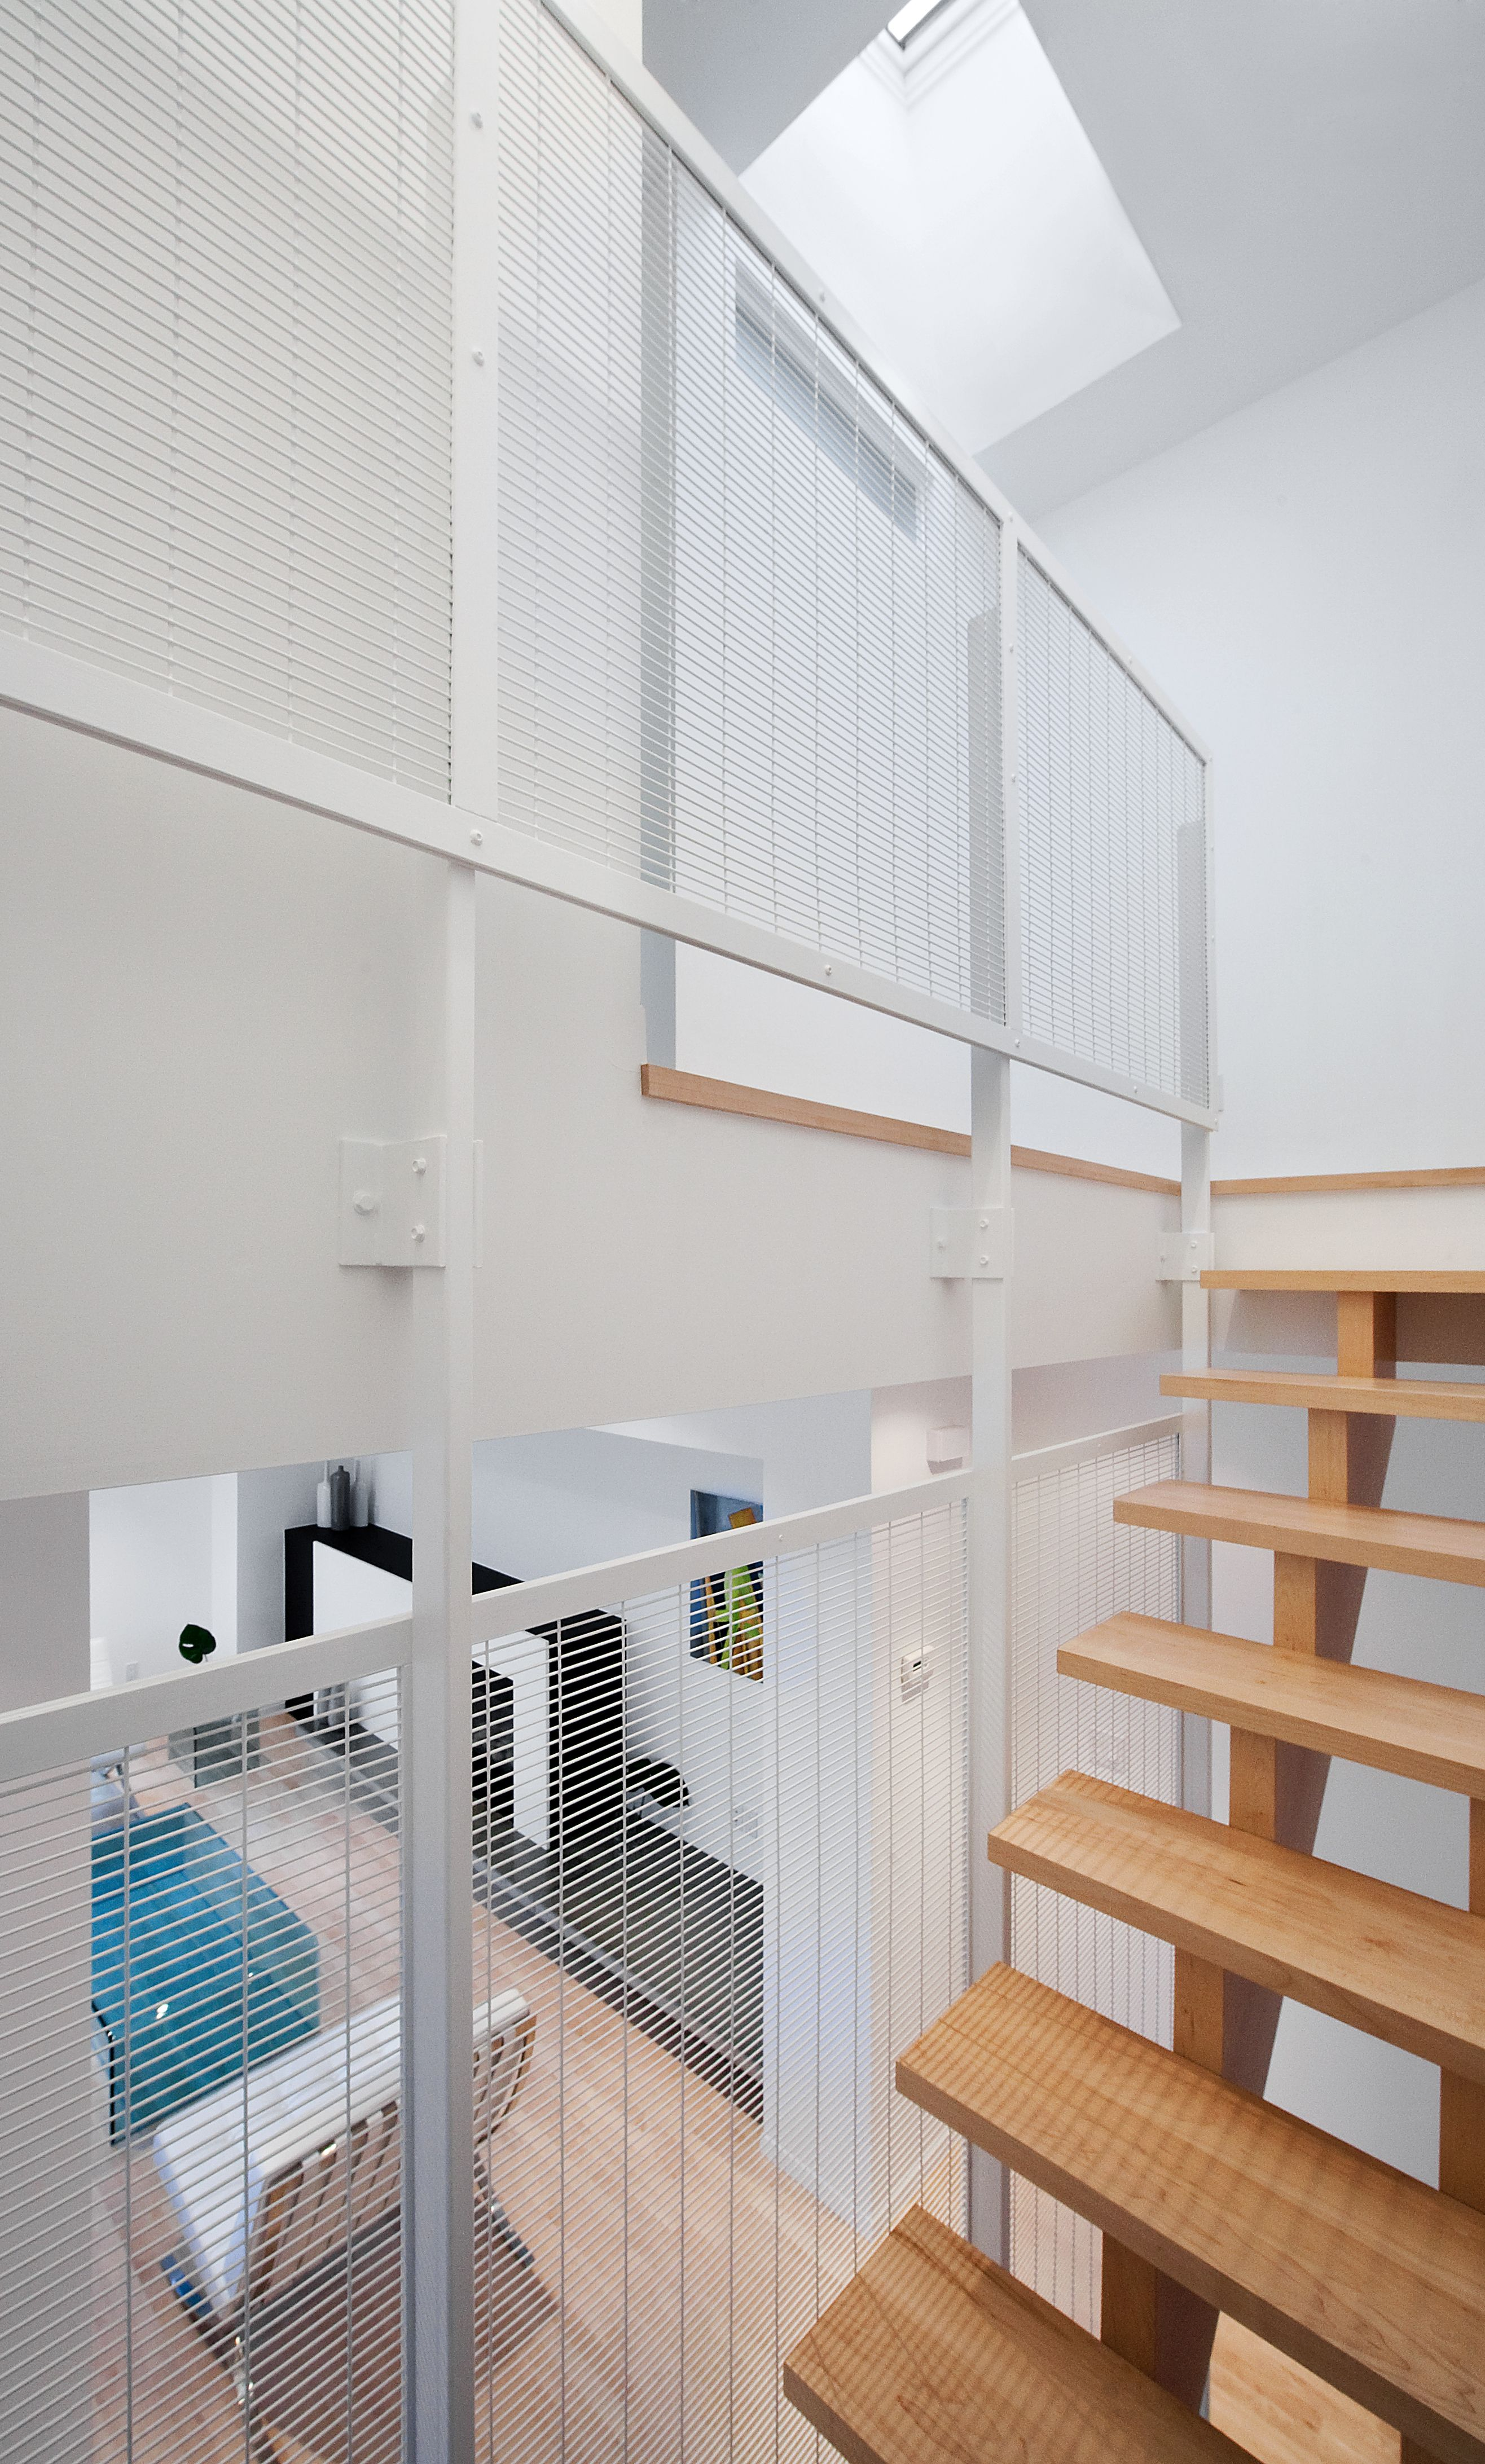 colizzabruni #modern #hintonburg #infill #home #design #interior ...